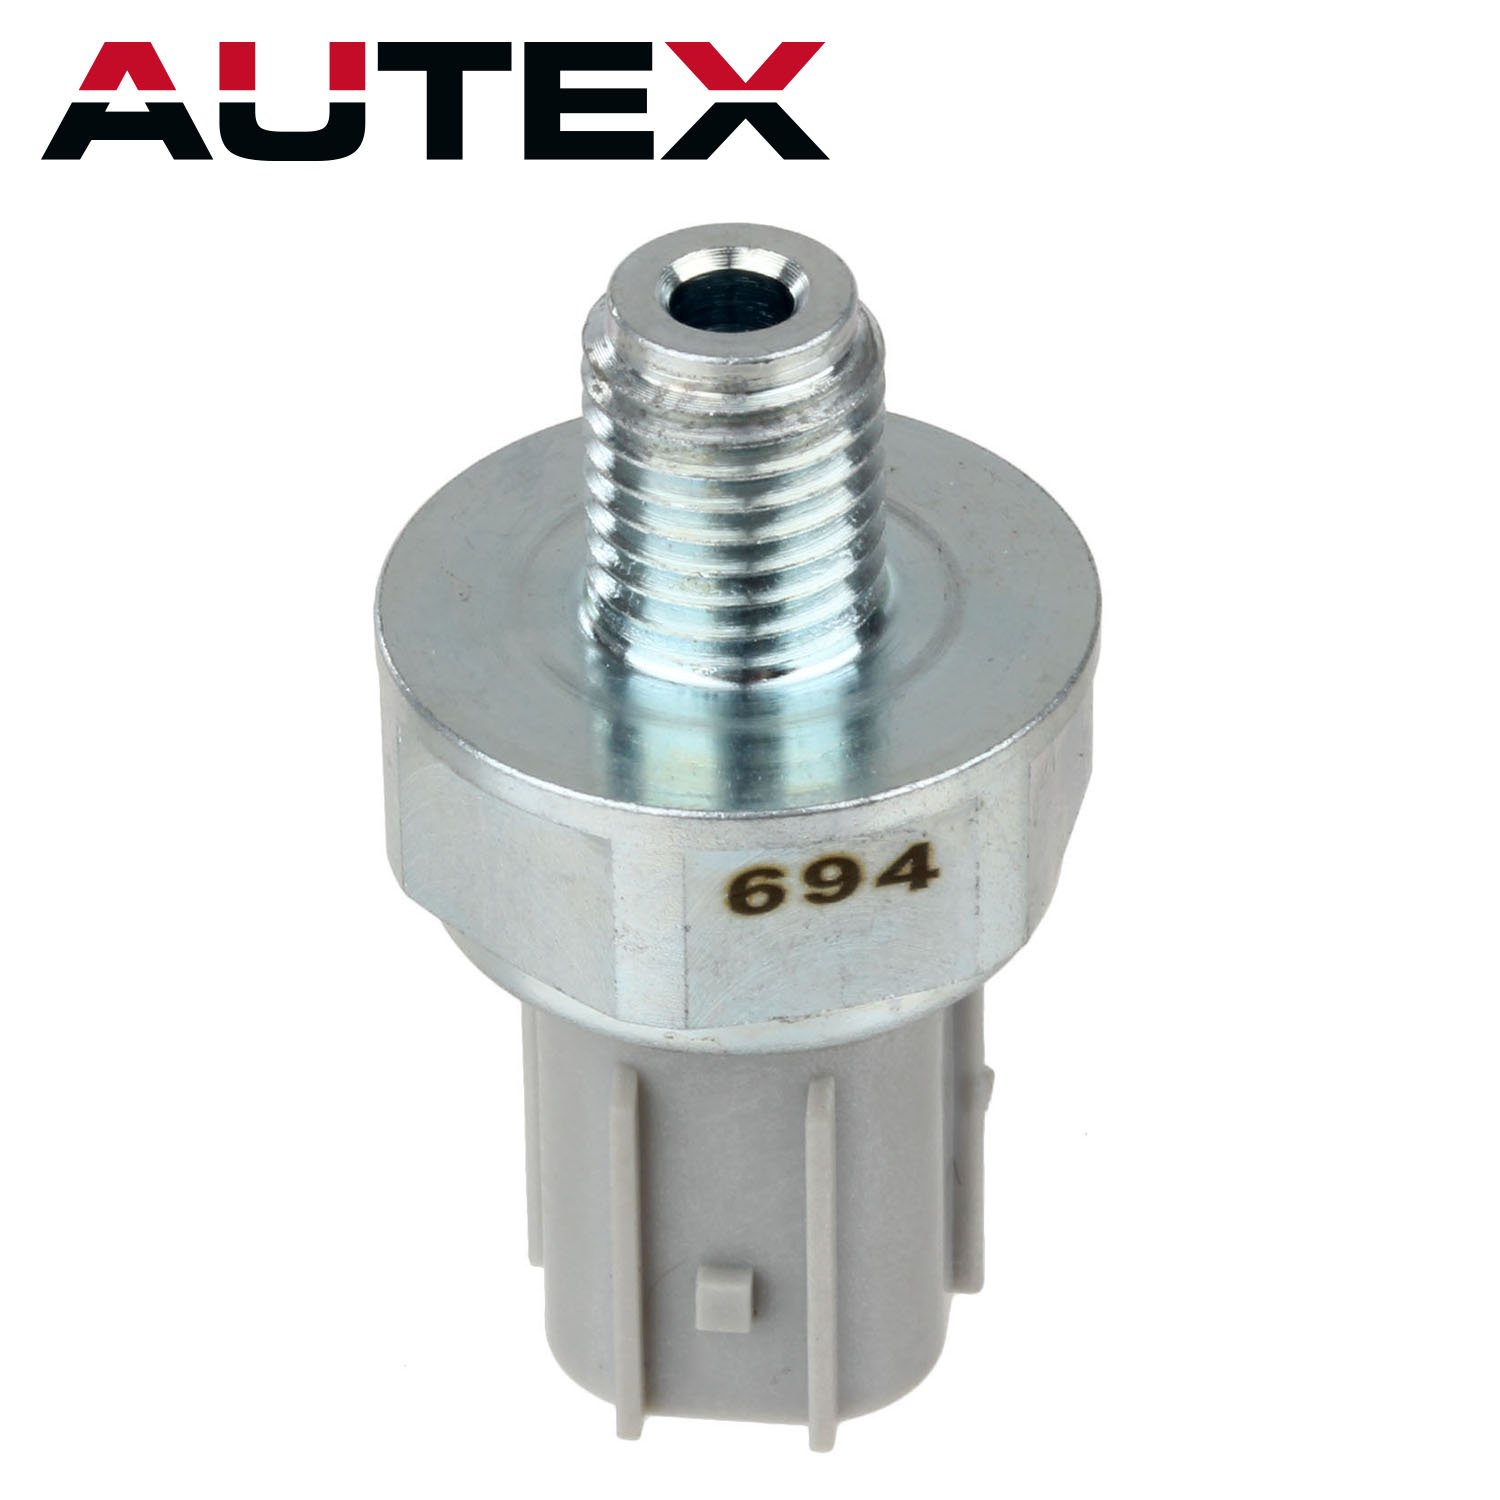 AUTEX Transmission Pressure Switch 5 Speed 33PSI Solenoid Compatible With Honda 2003 up 28610-RAY-003